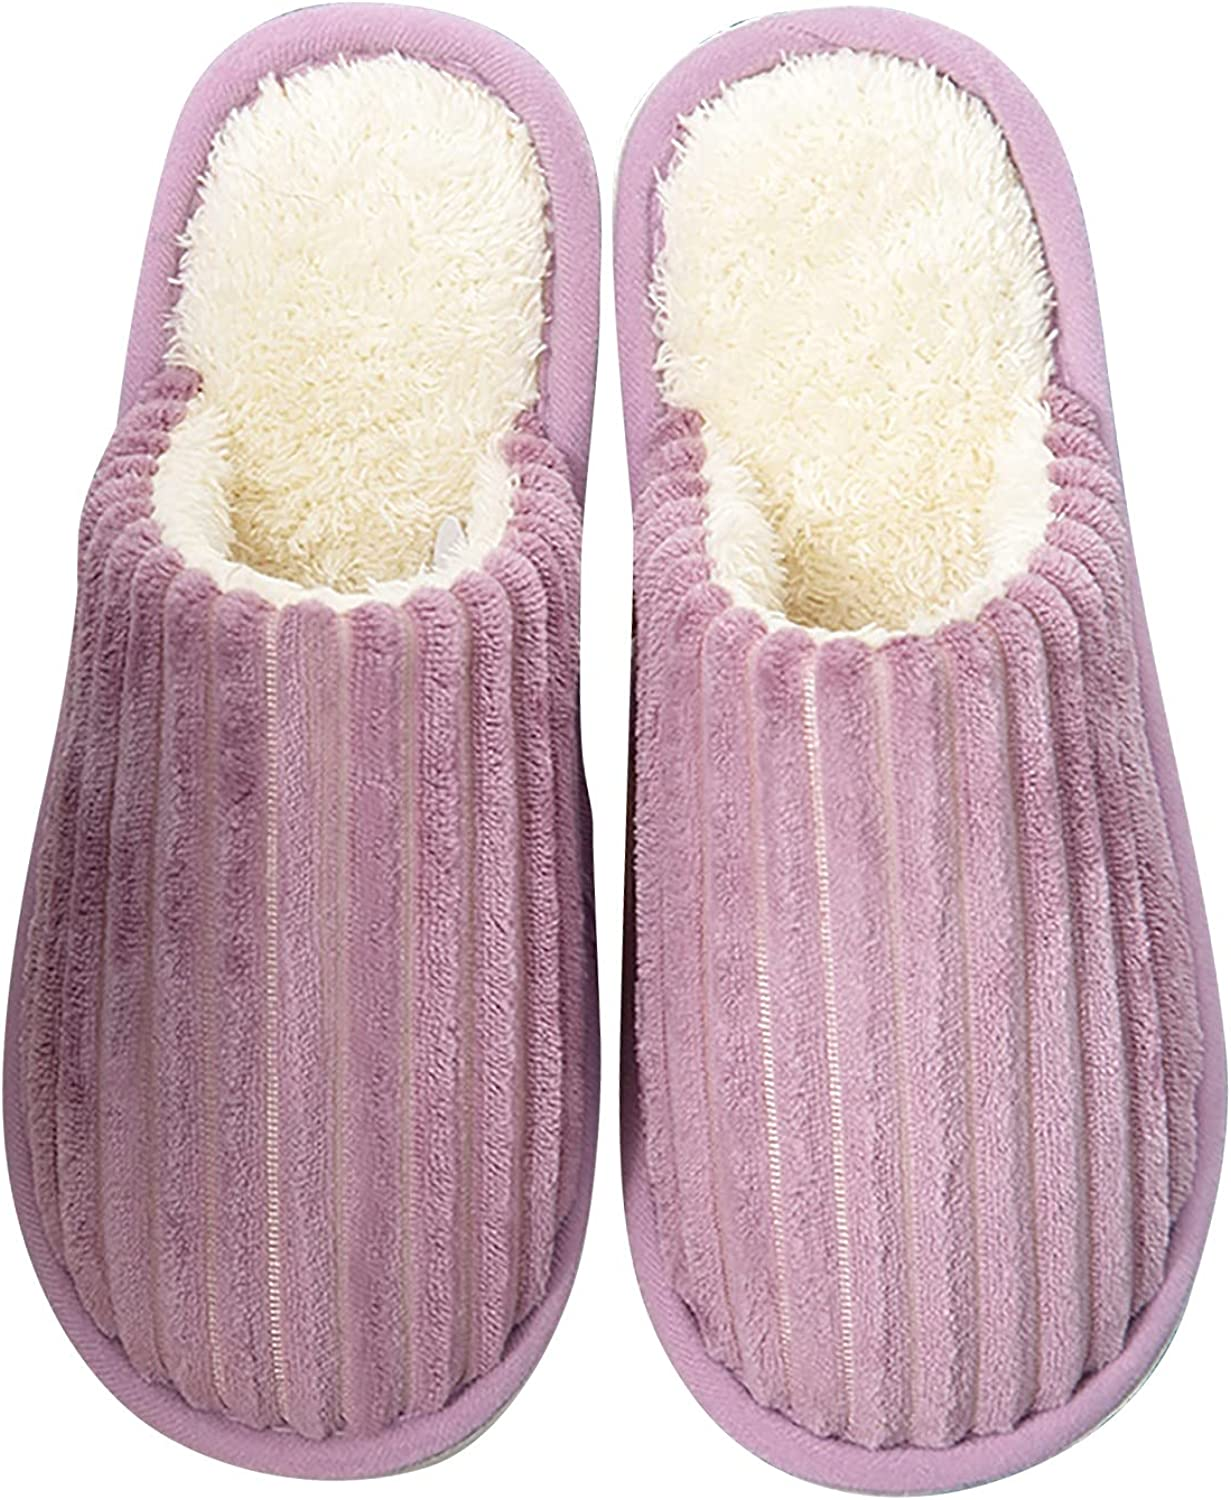 Hunauoo Slippers for Women Pure Warm Cotton El Paso Mall Color House Quality inspection